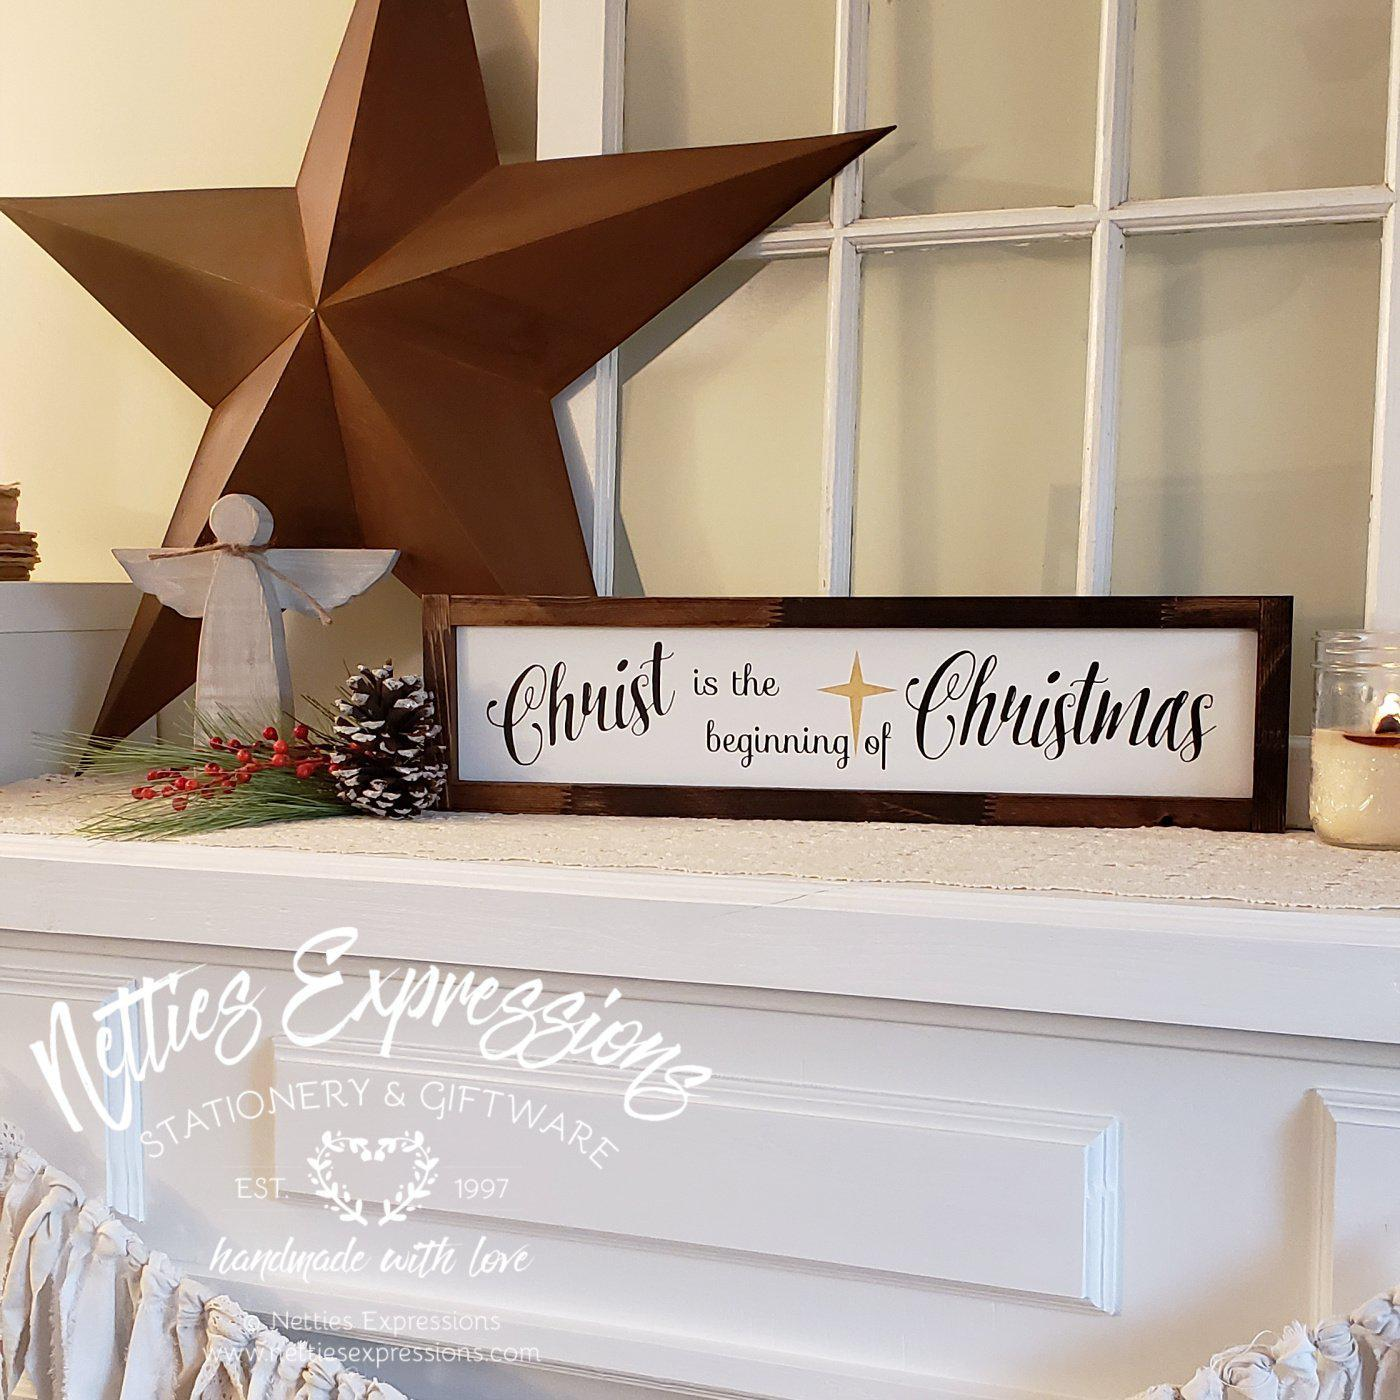 Christ is the beginning of Christmas - Rustic Framed Wood Christmas Sign - Netties Expressions